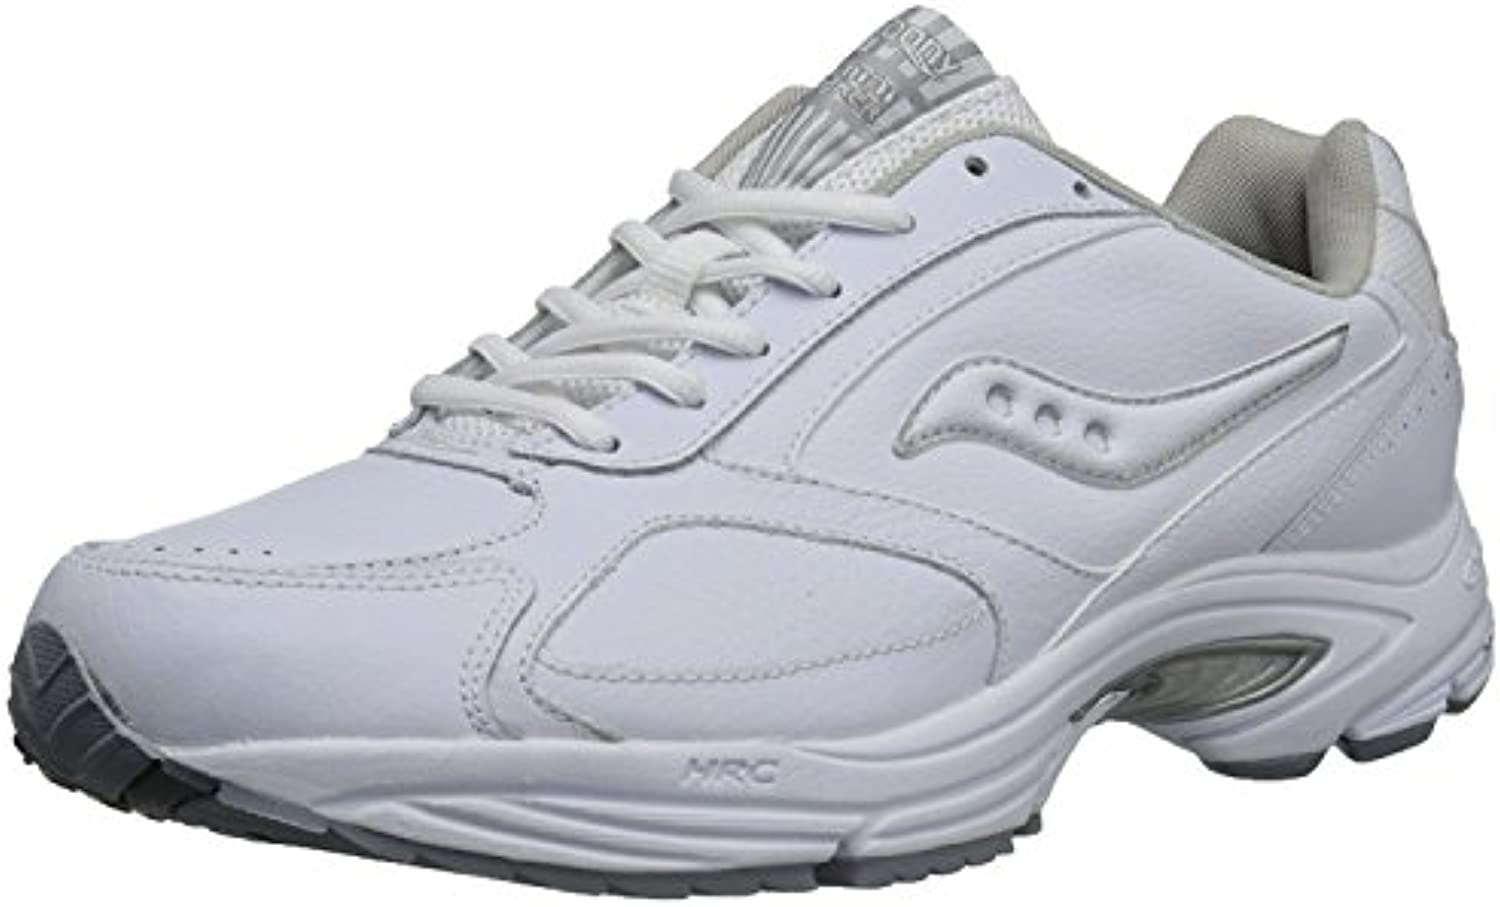 Saucony Men'S Grid Omni Walking Shoe, Blanco/Plateado, 46.5 2E EU/11 2E UK